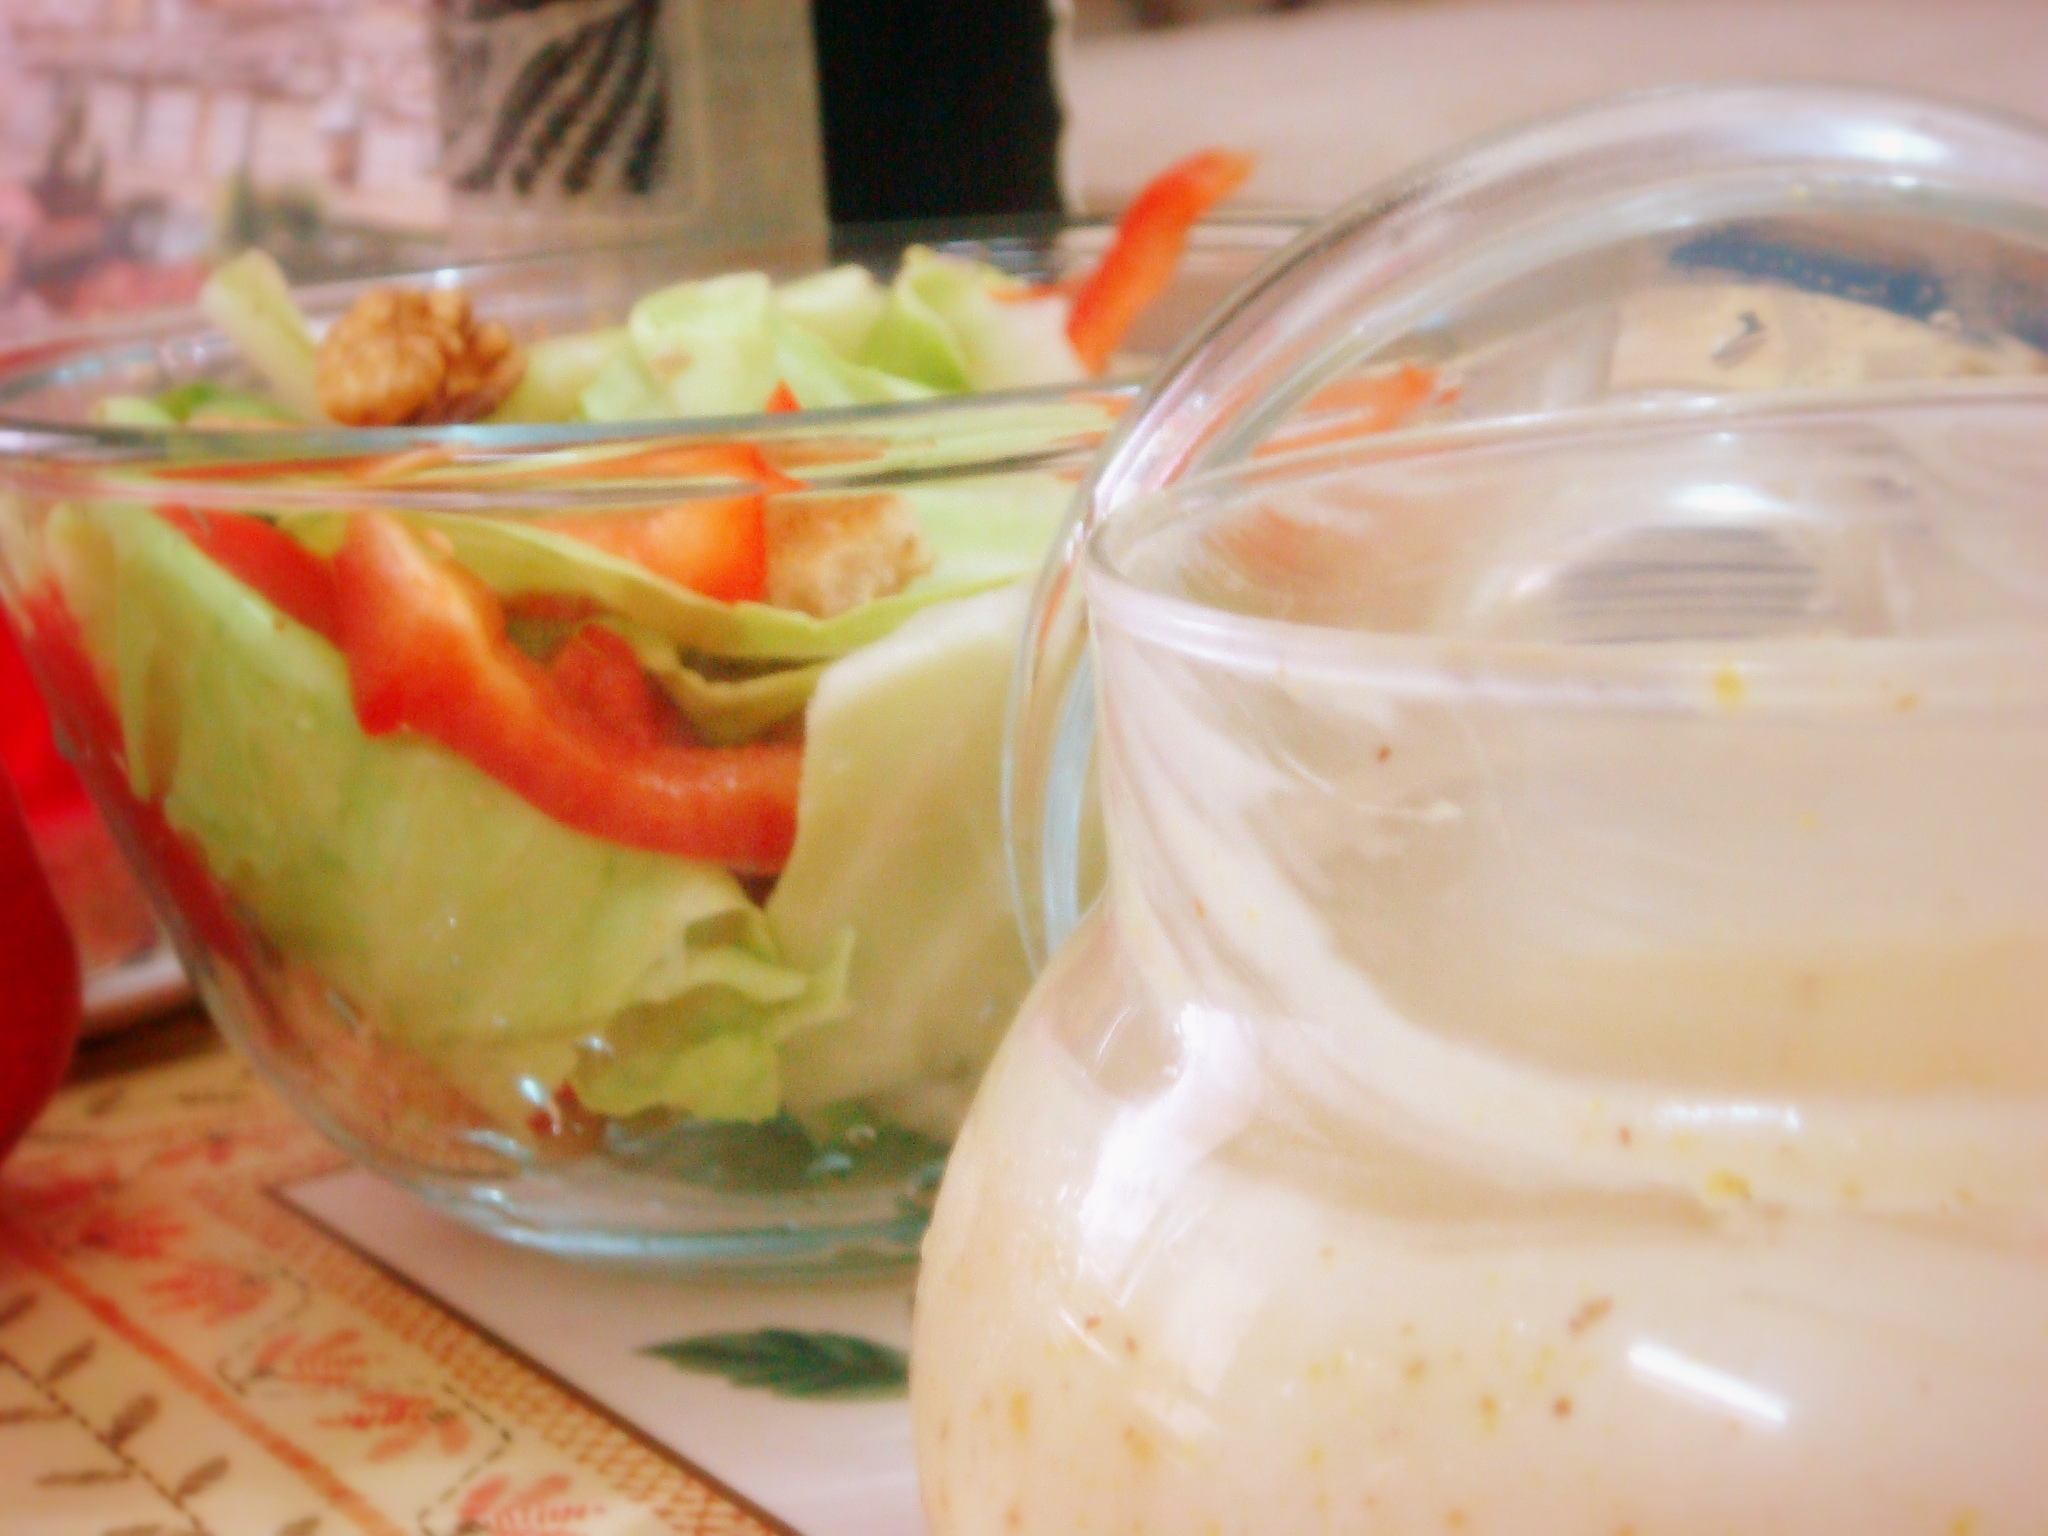 Lettuce salad with dressing